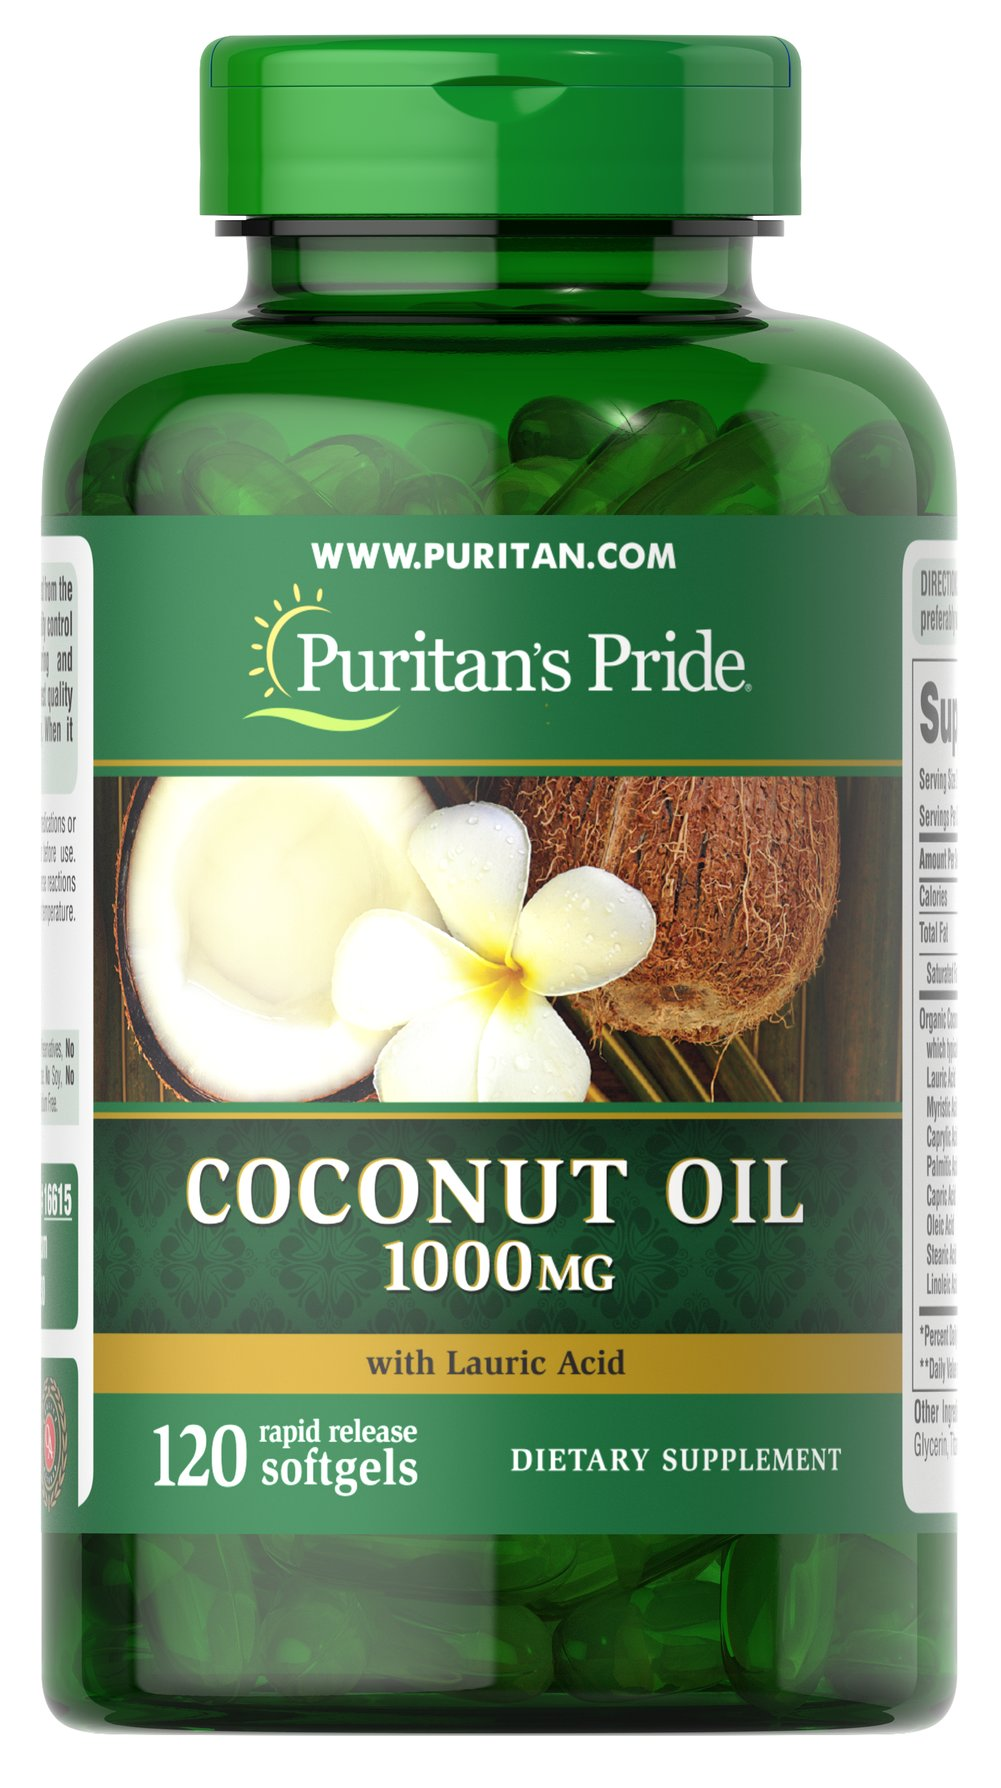 Coconut Oil 1000 mg Thumbnail Alternate Bottle View